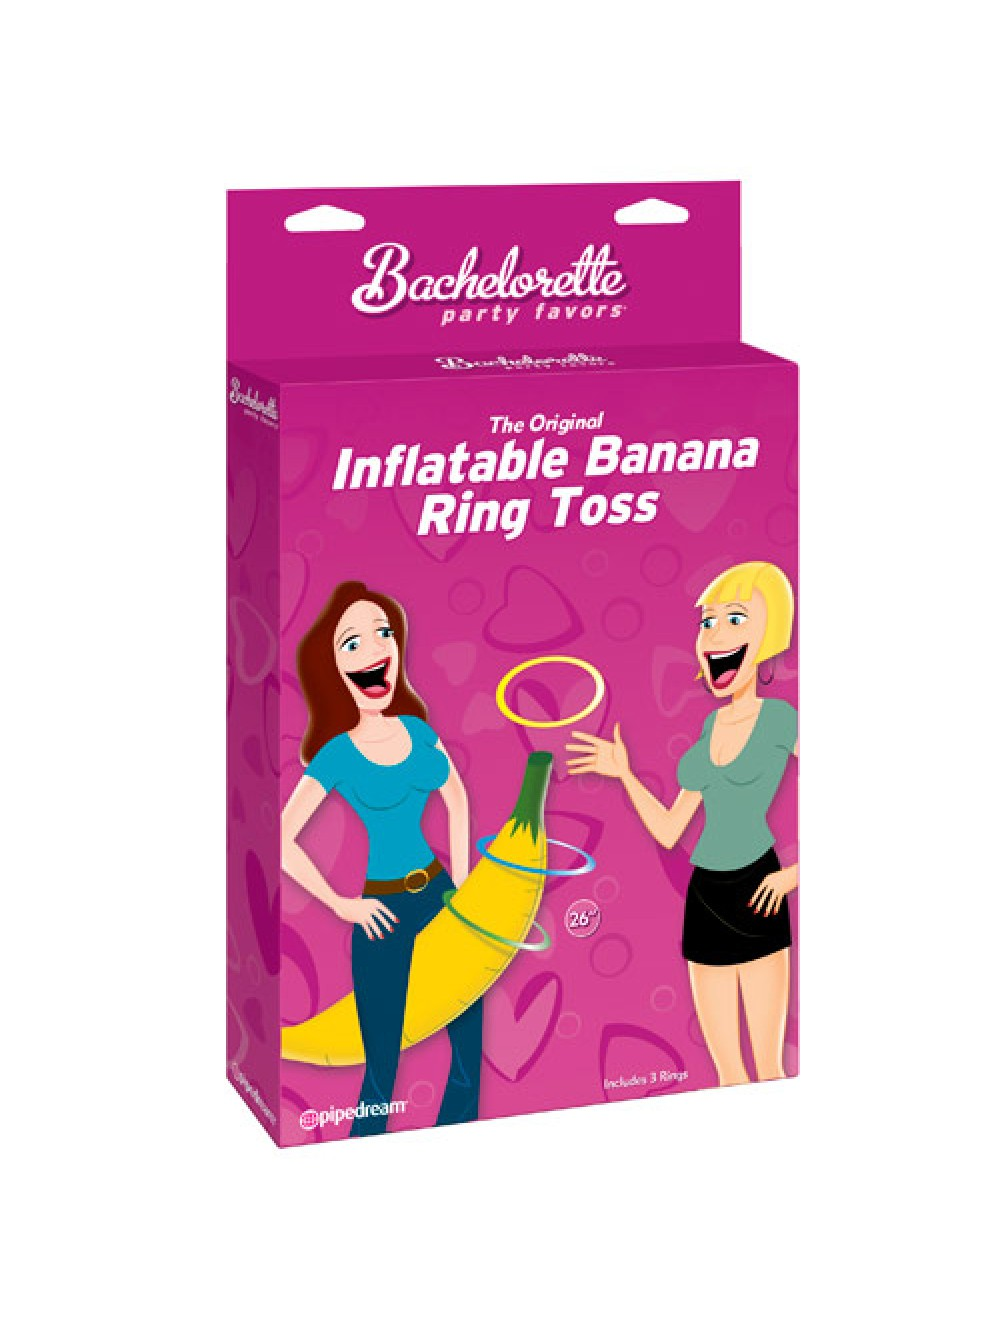 Inflatable Banana Ring Toss 603912282061